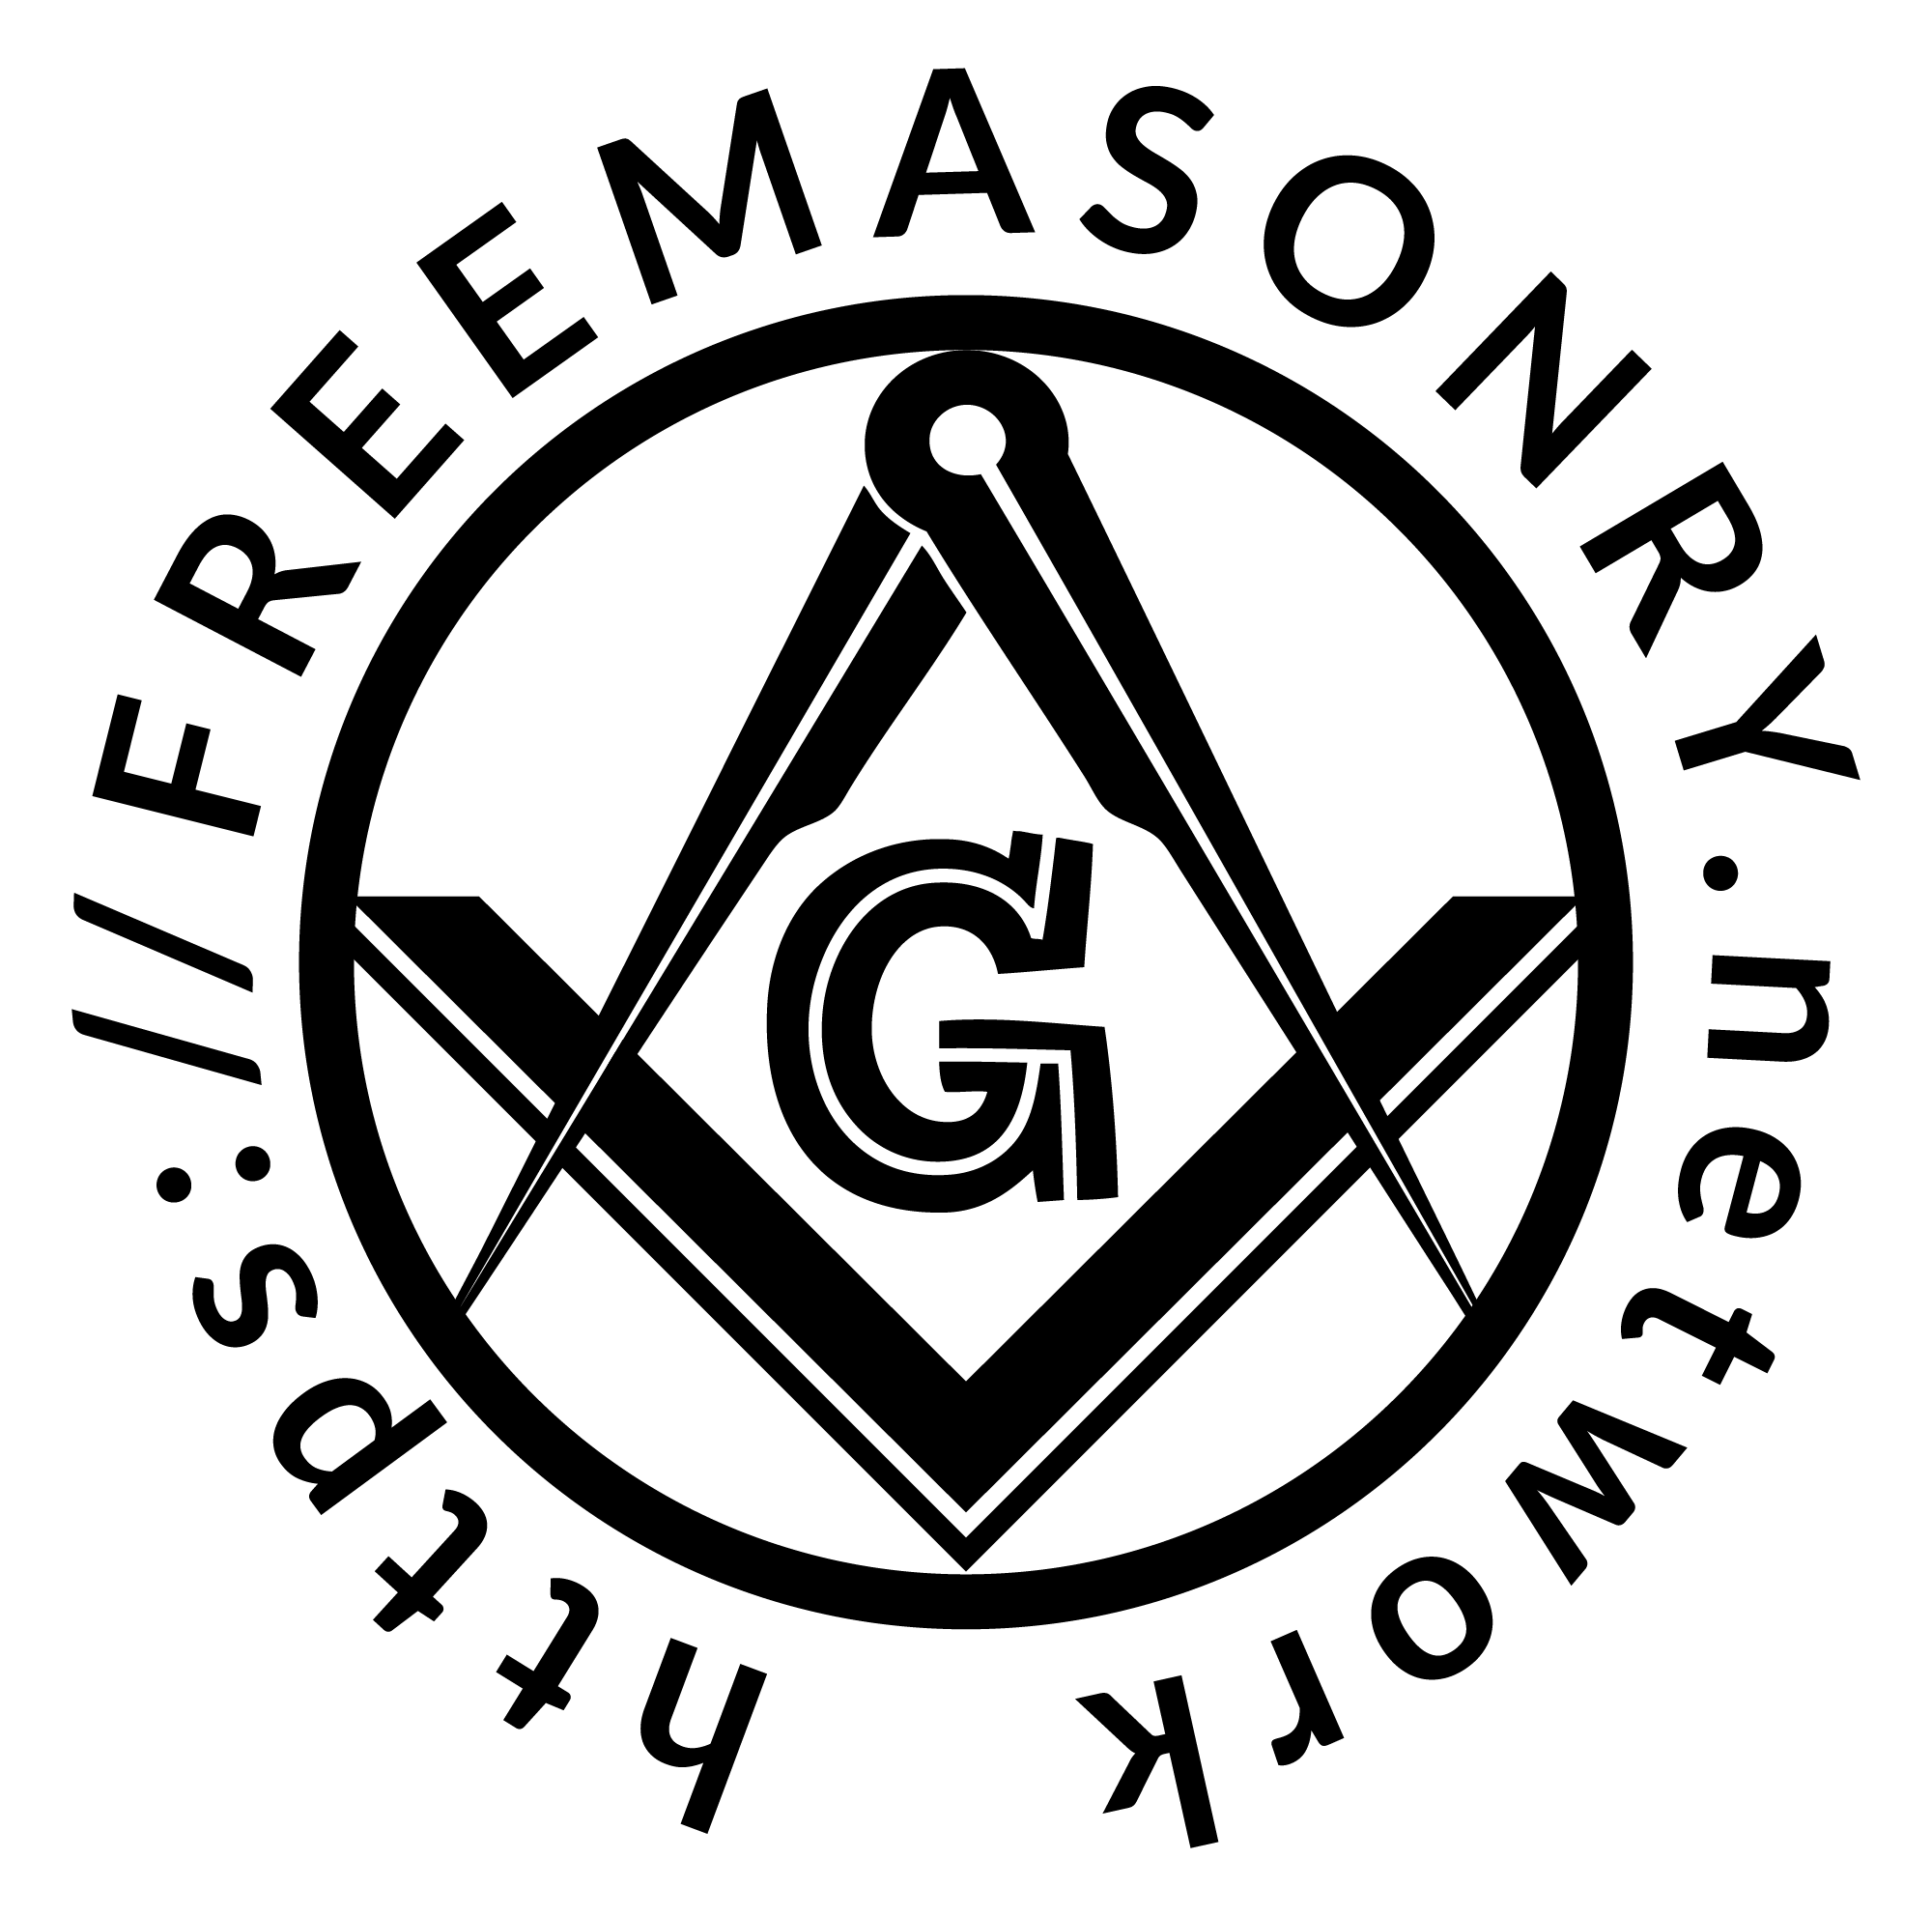 JUSTICE AS MASONIC VIRTUE